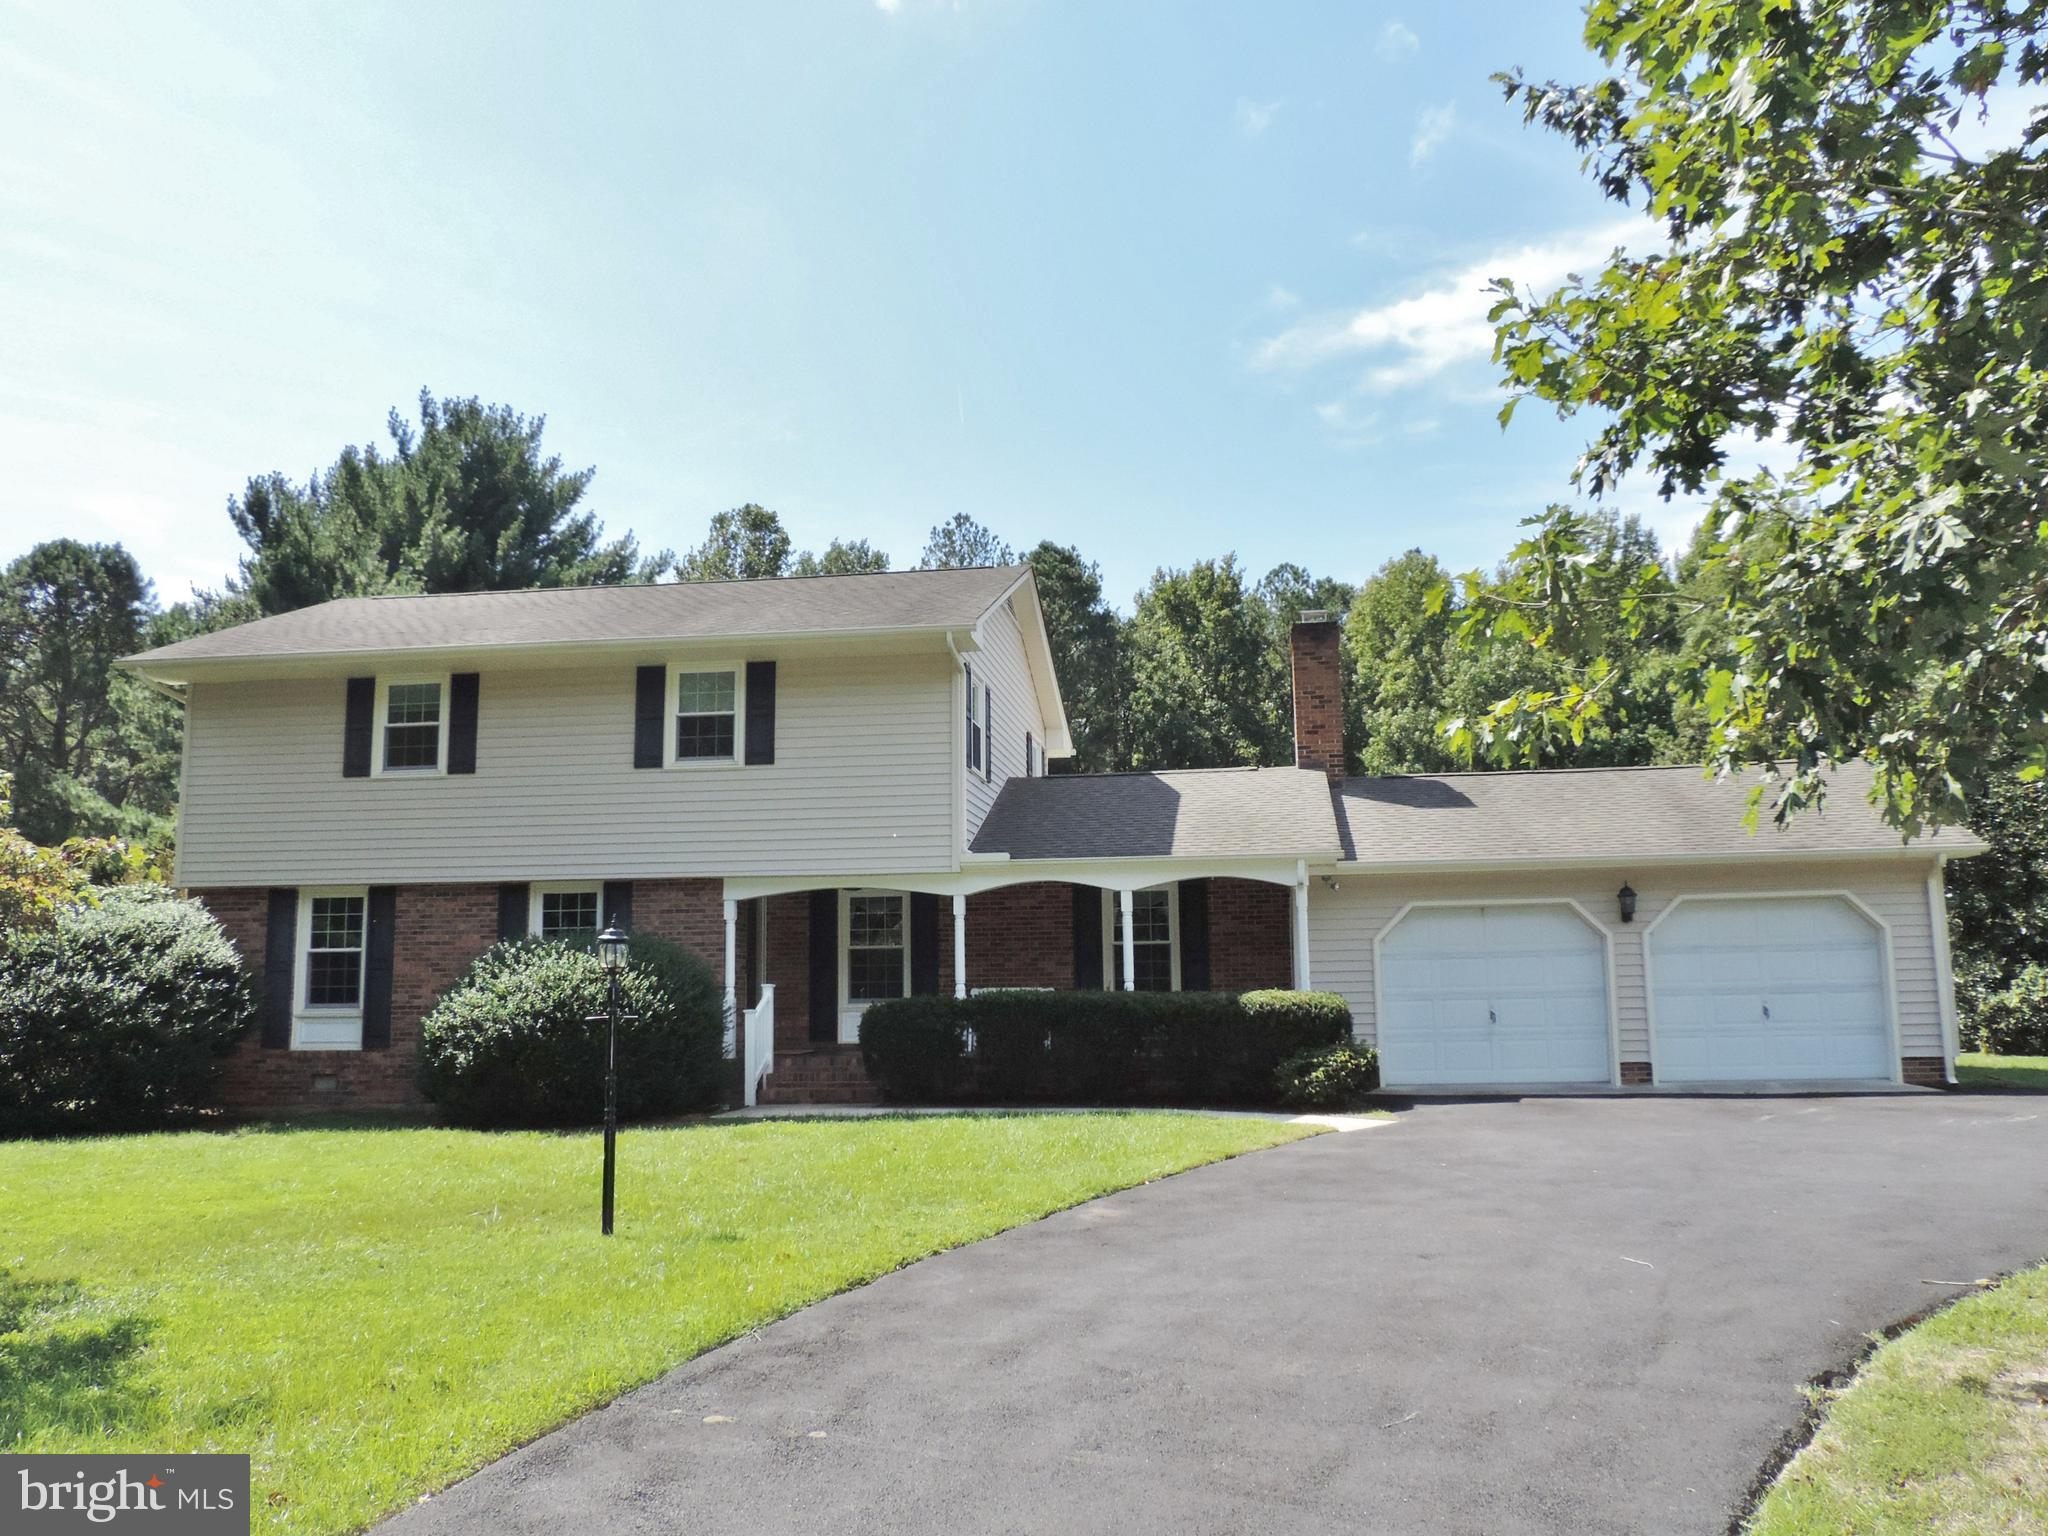 4184 COULBOURN MILL Rd, Salisbury, MD, 21804